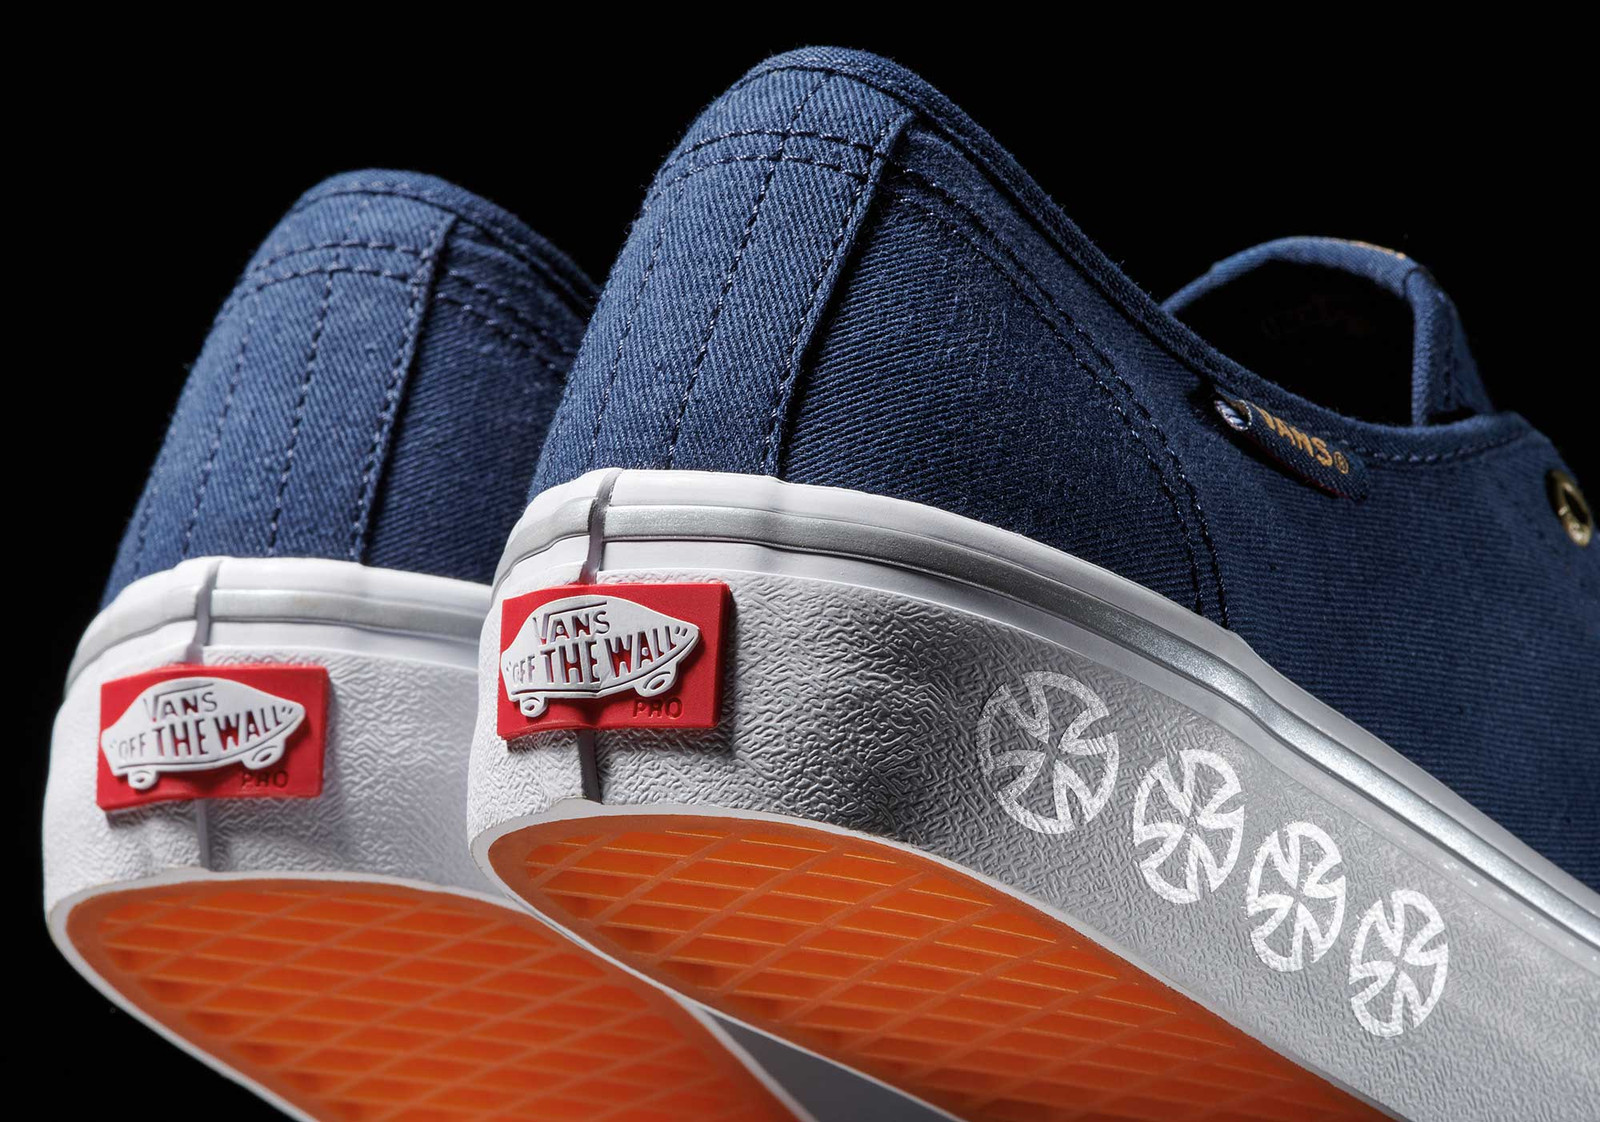 VANS AND INDEPENDENT HOLIDAY ASSORTMENT AVAILABLE NOW